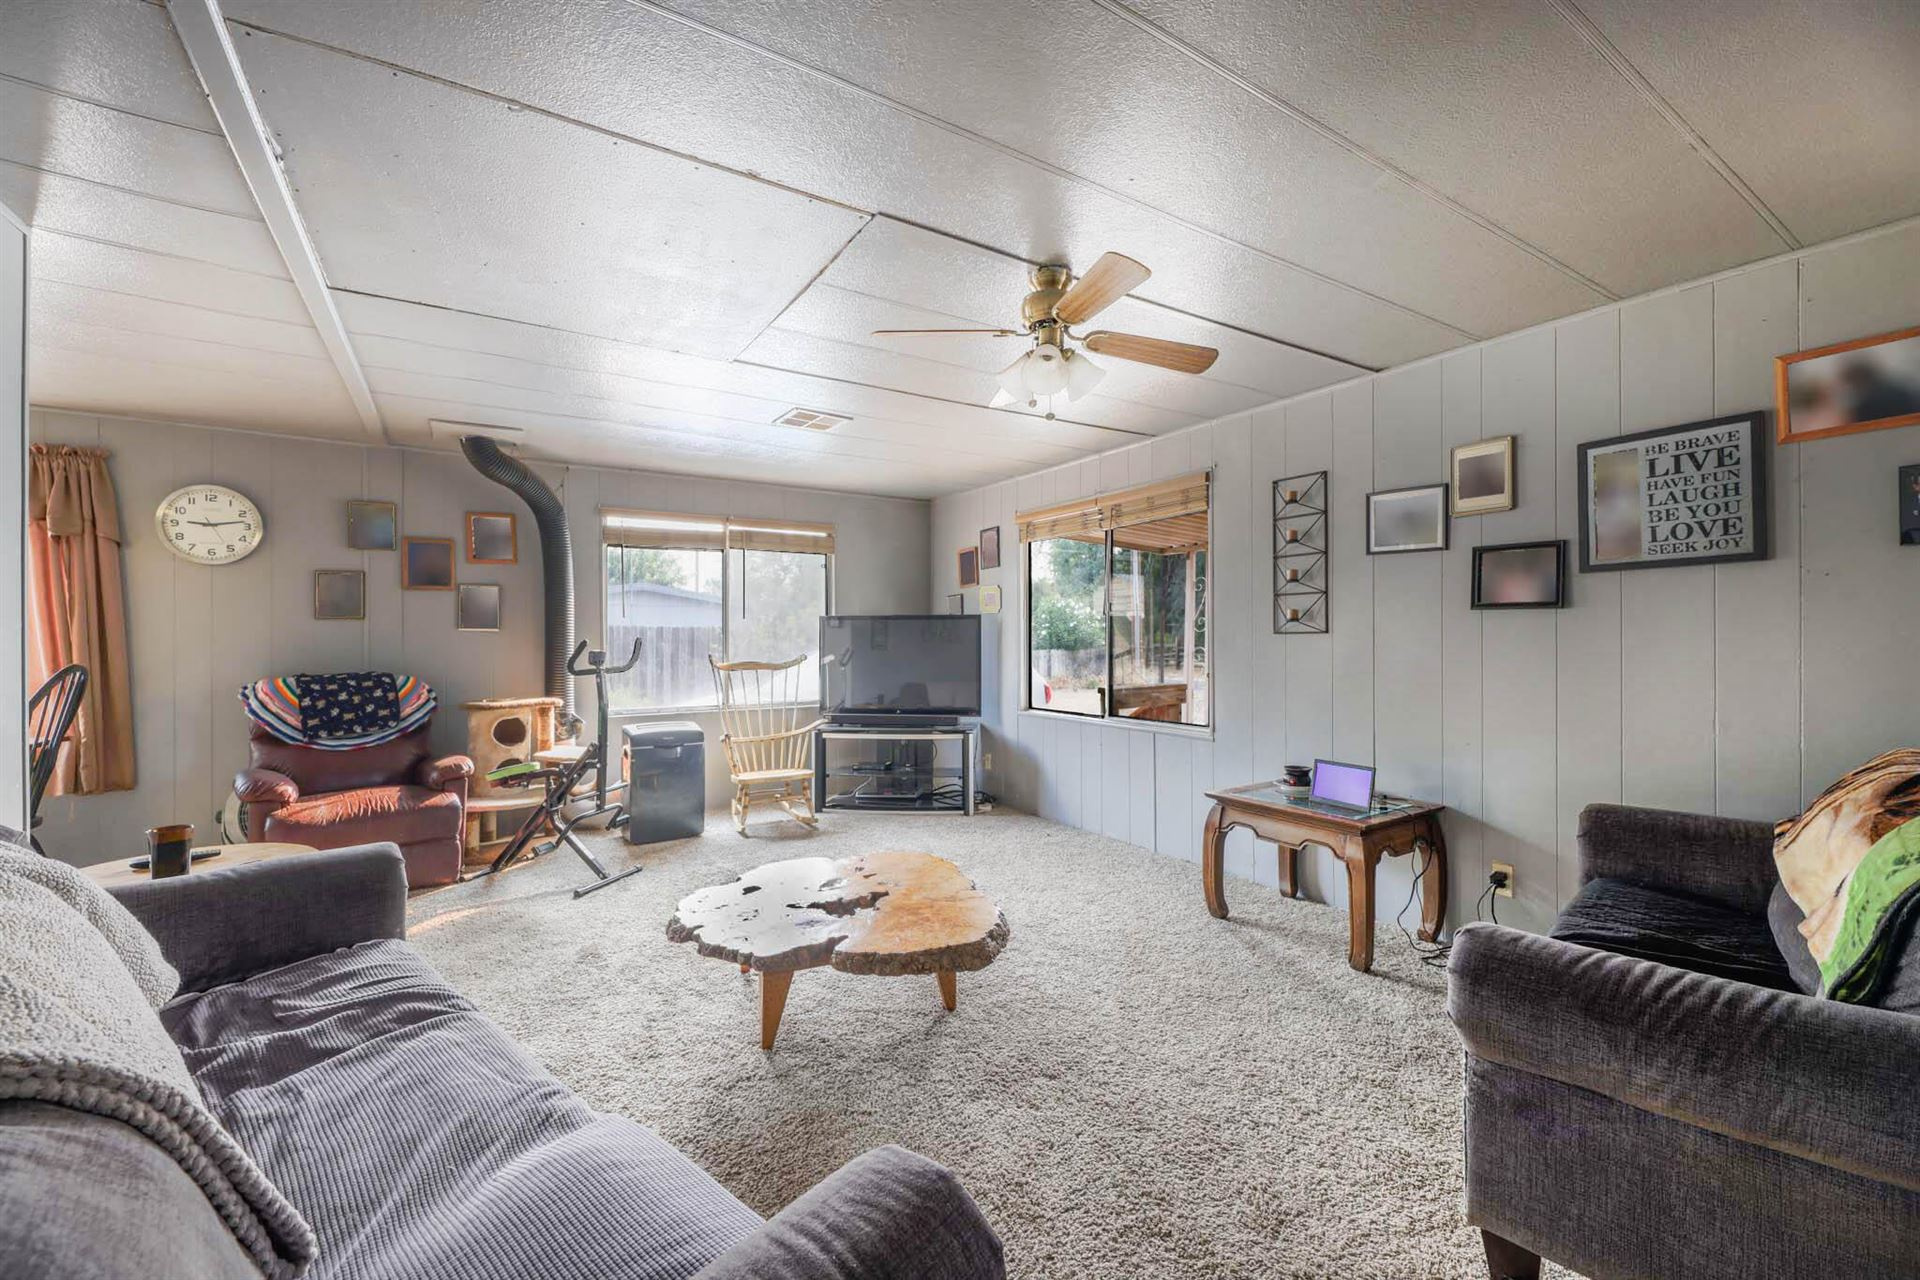 Photo of 19368 Anna Rd, Anderson, CA 96007 (MLS # 21-4219)